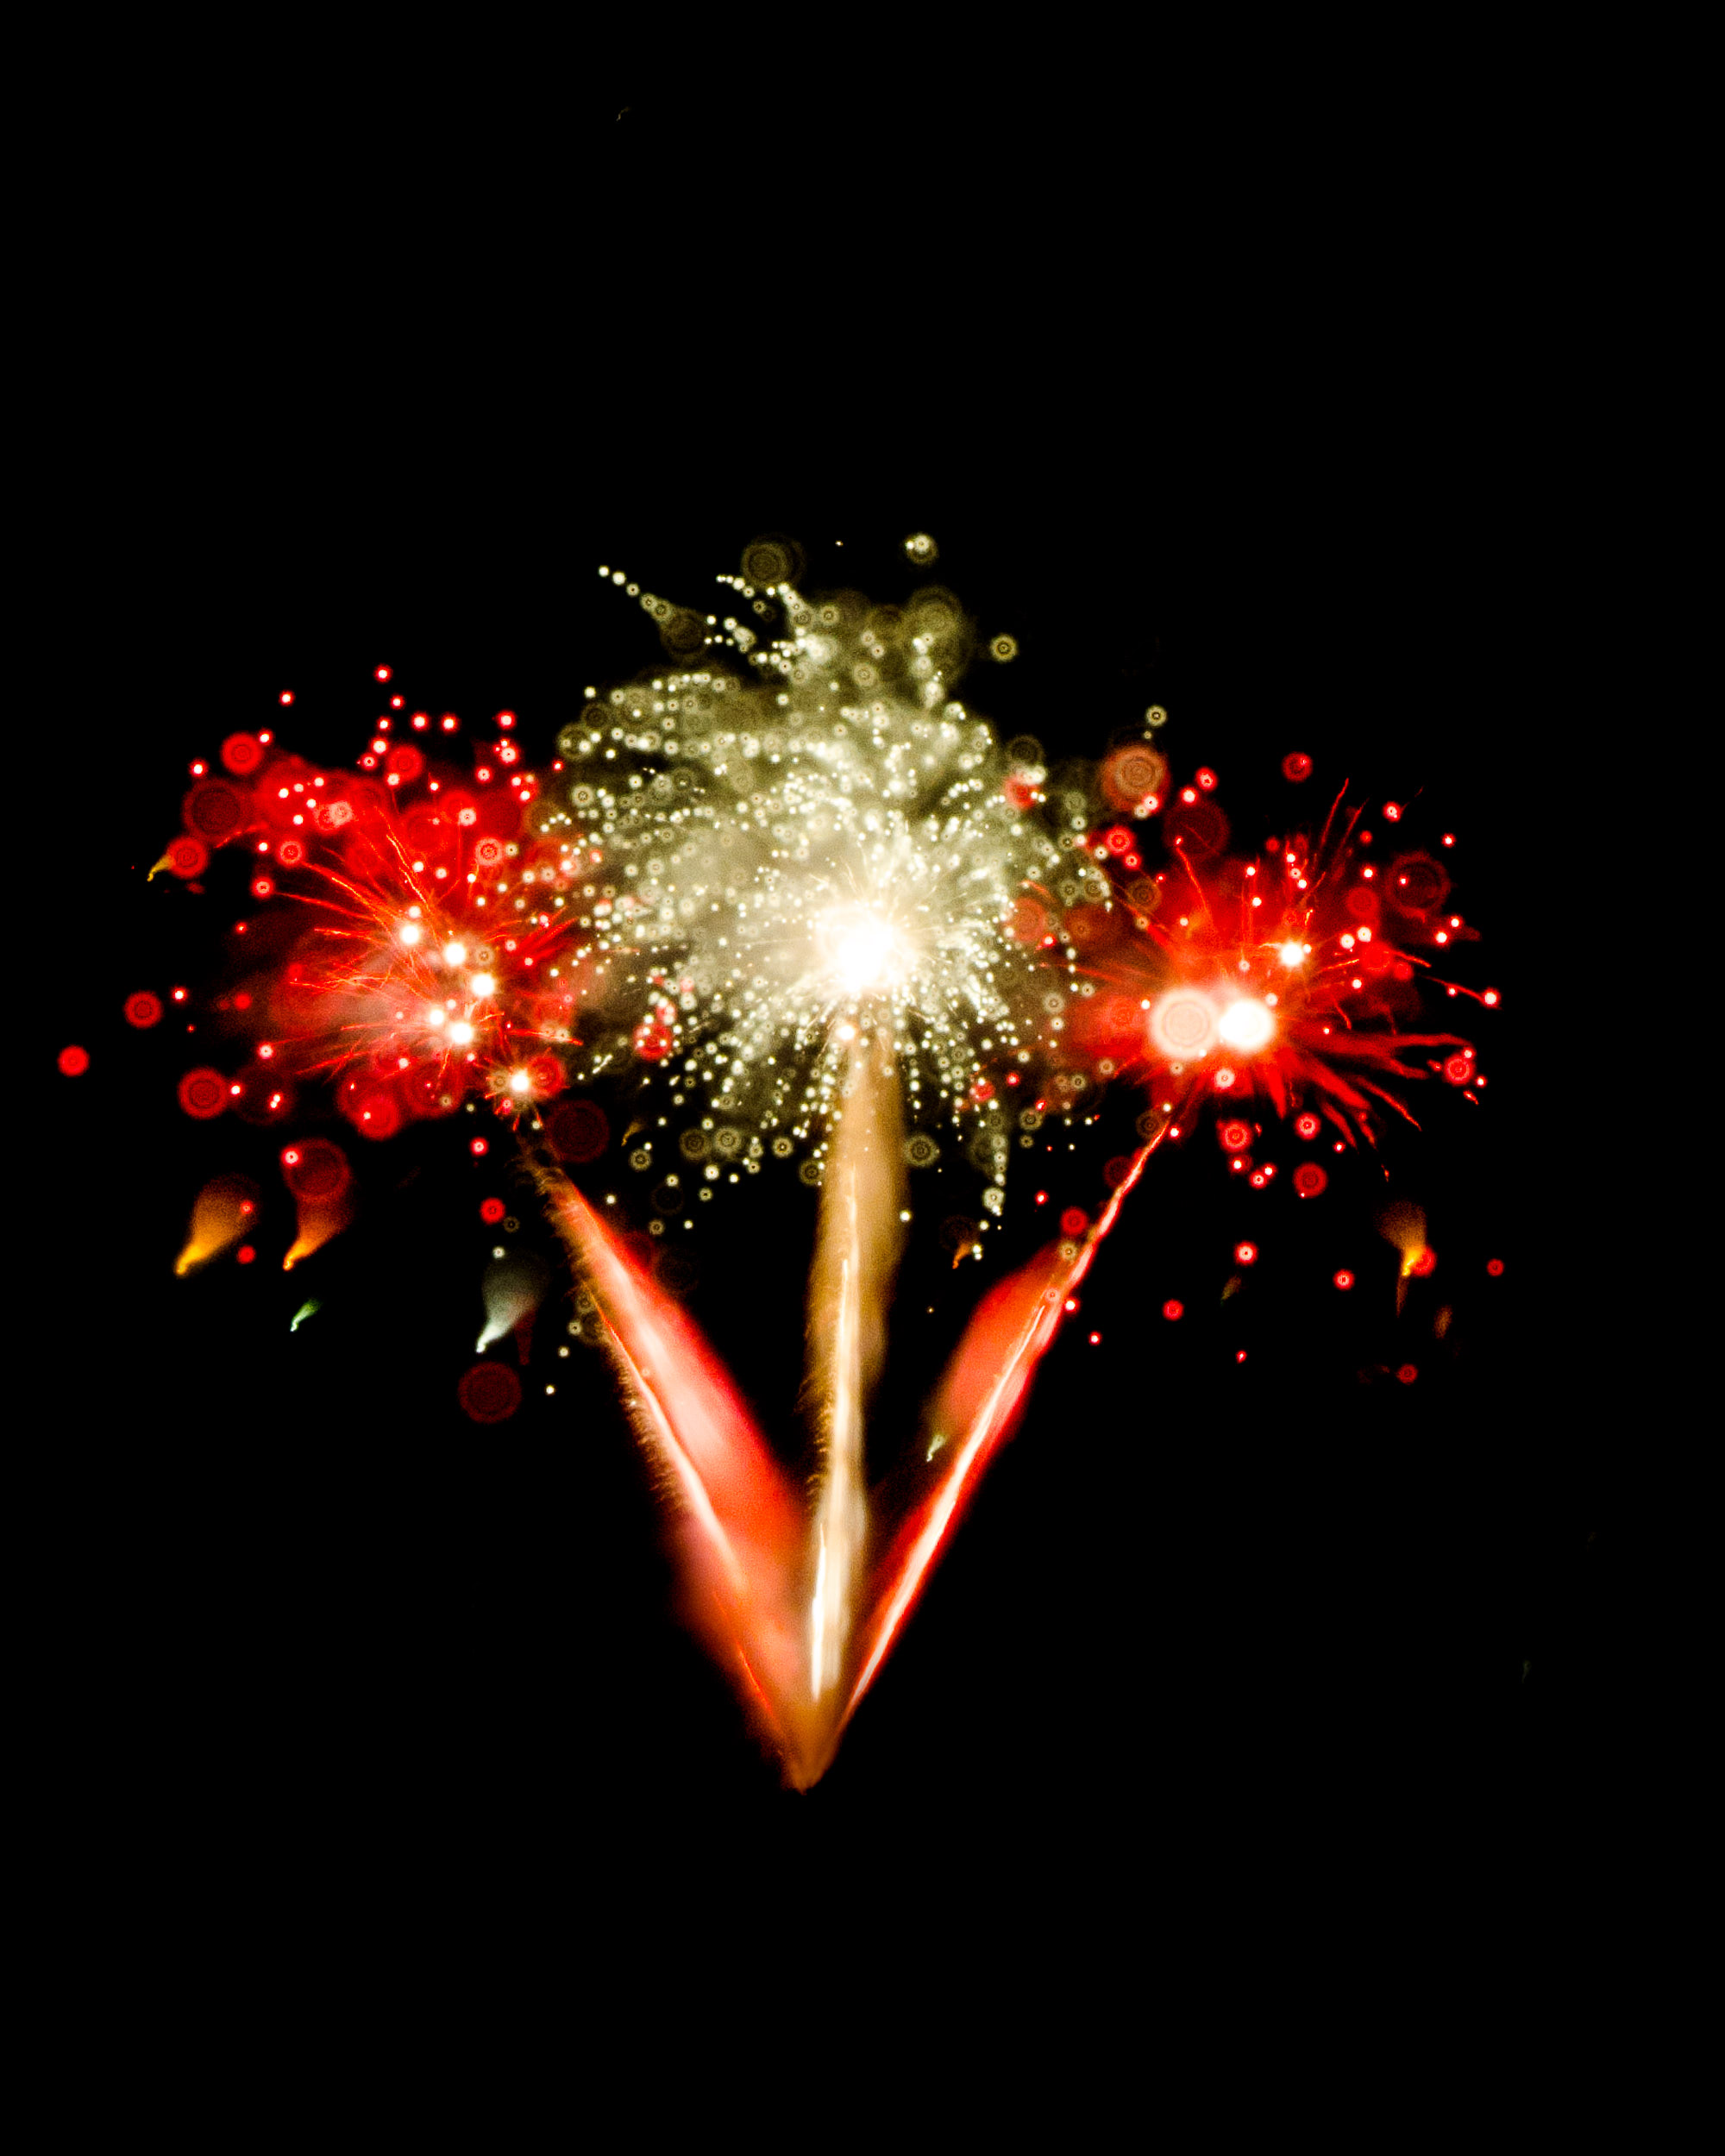 Firework Photo, Night Flower 36, WIRED Magazine